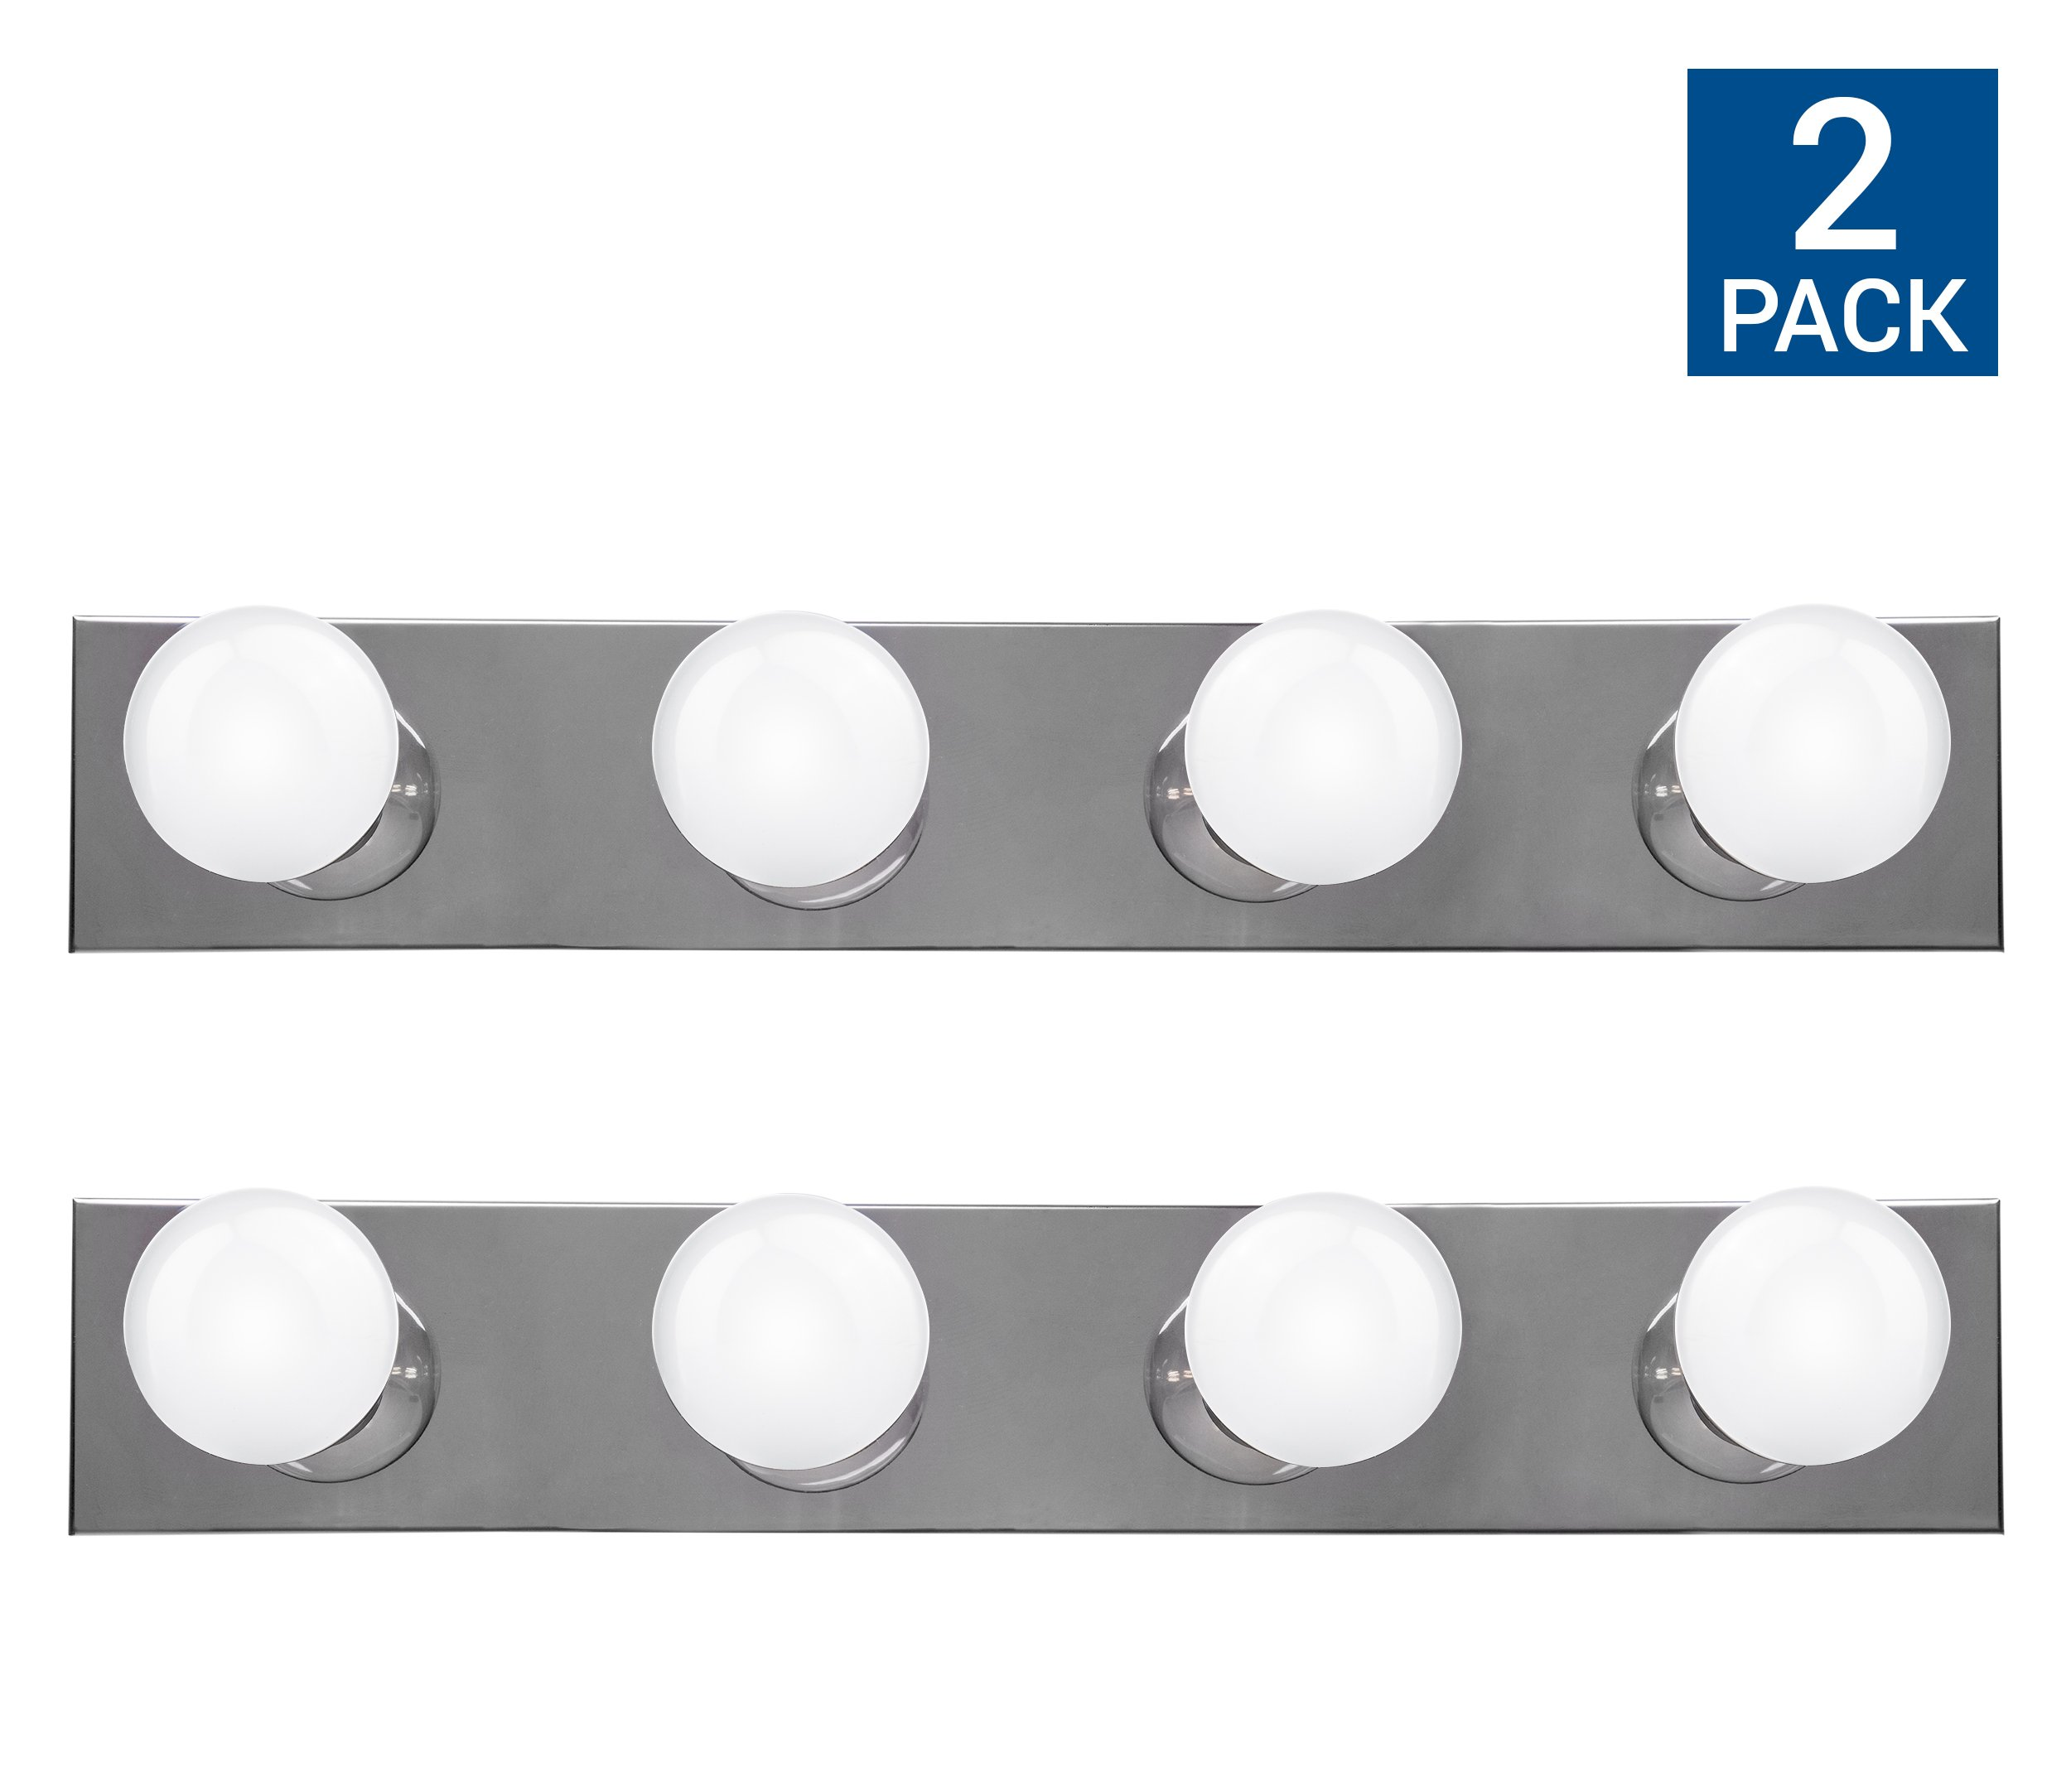 Hyperikon Vanity Lights, 4 Light Vanity Bar Strip Fixture, 24 Inch with 4 Sockets (E26 Medium Base), Polished Chrome Finish, Plug and Switch Rotary Cord - Bulbs Not Included (2 Pack)